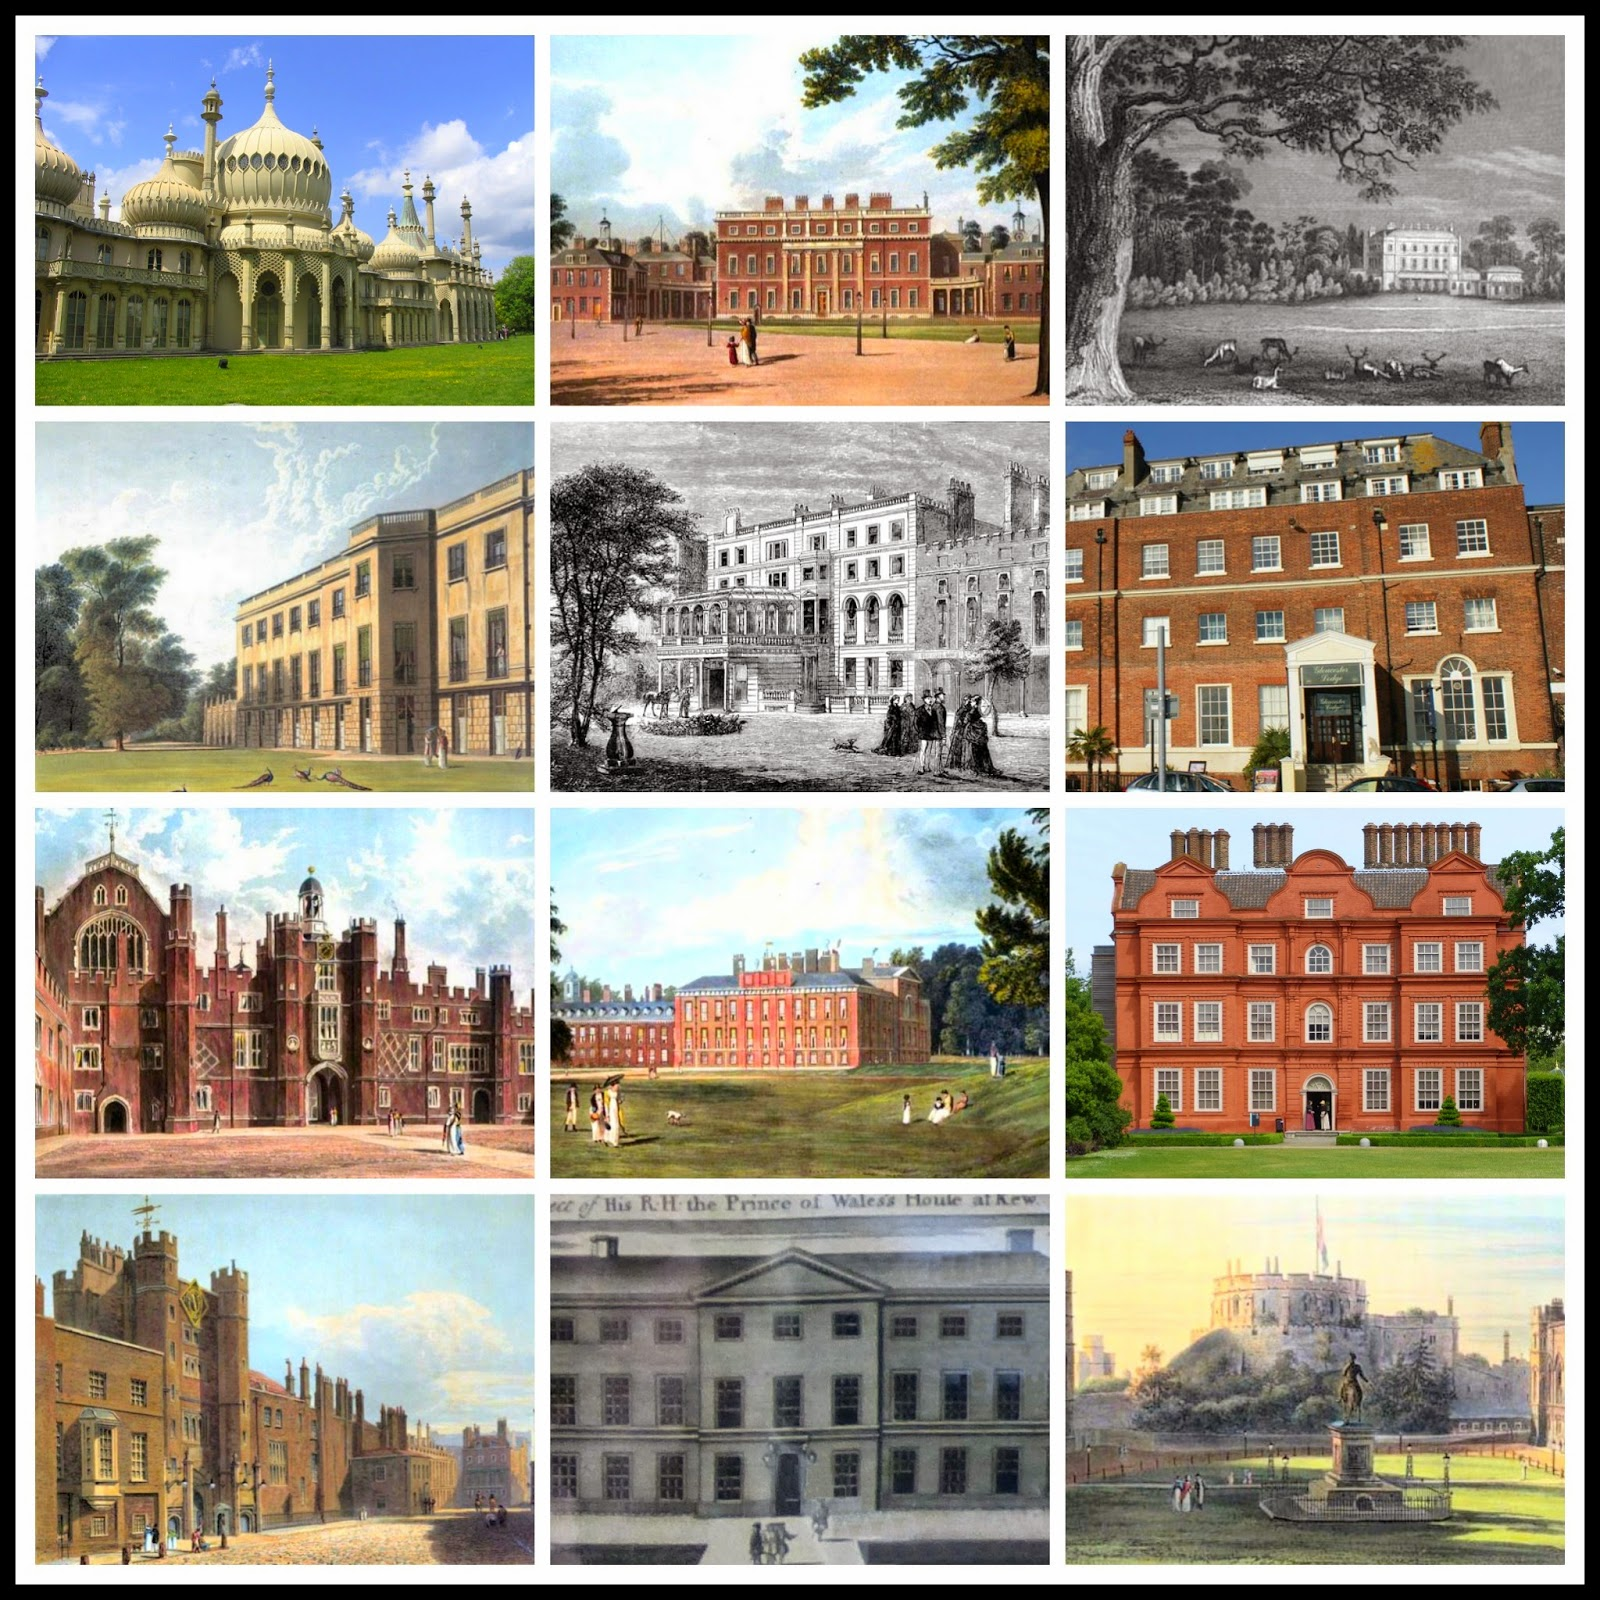 A collage of 12 royal residences